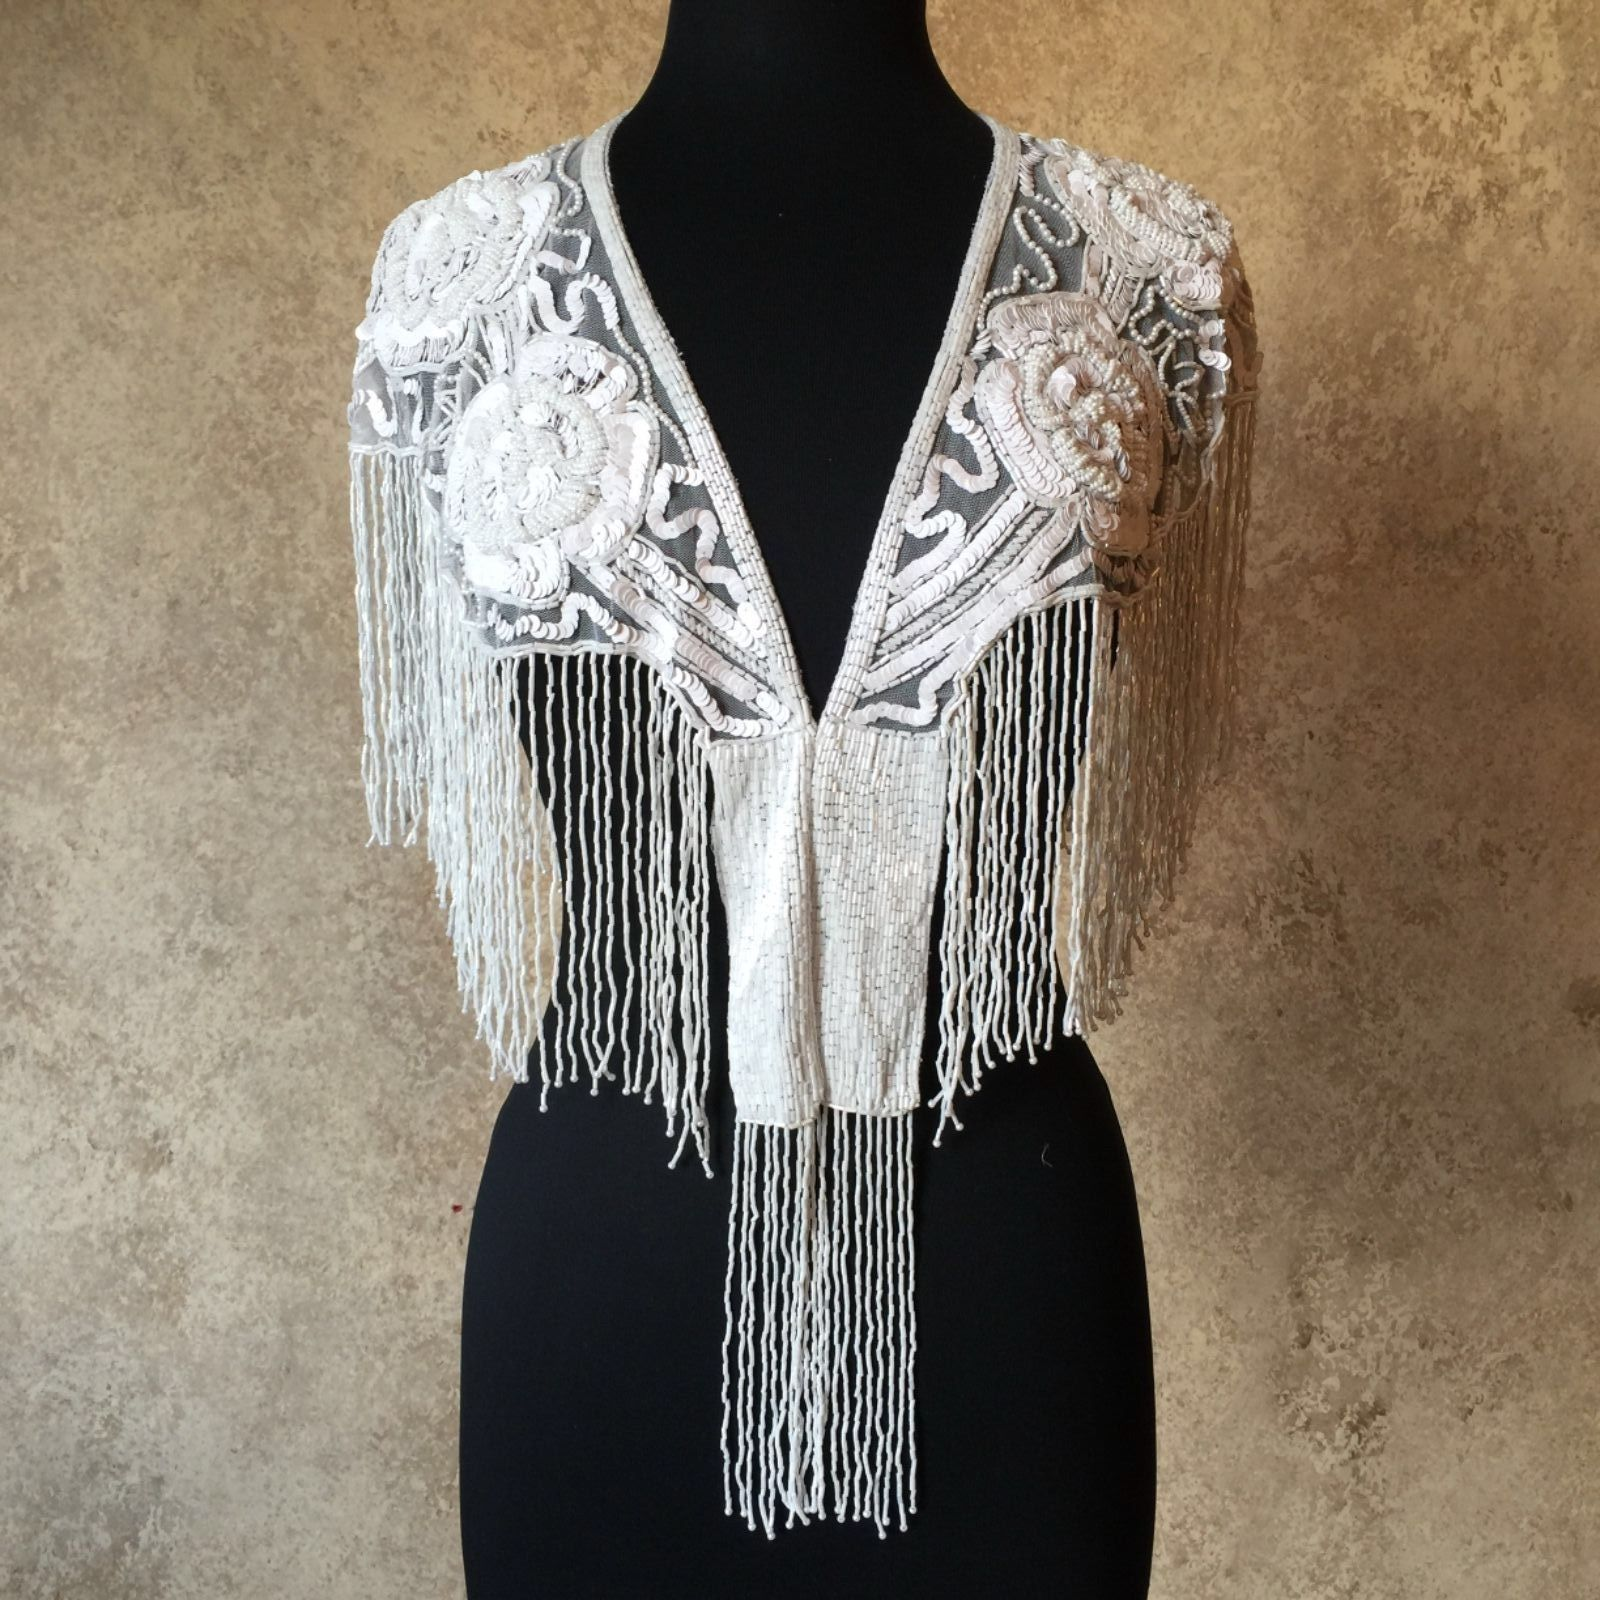 Primary image for Sequin Beaded Lace Collar Shoulder Shrug Shawl Applique White Wedding Bridal